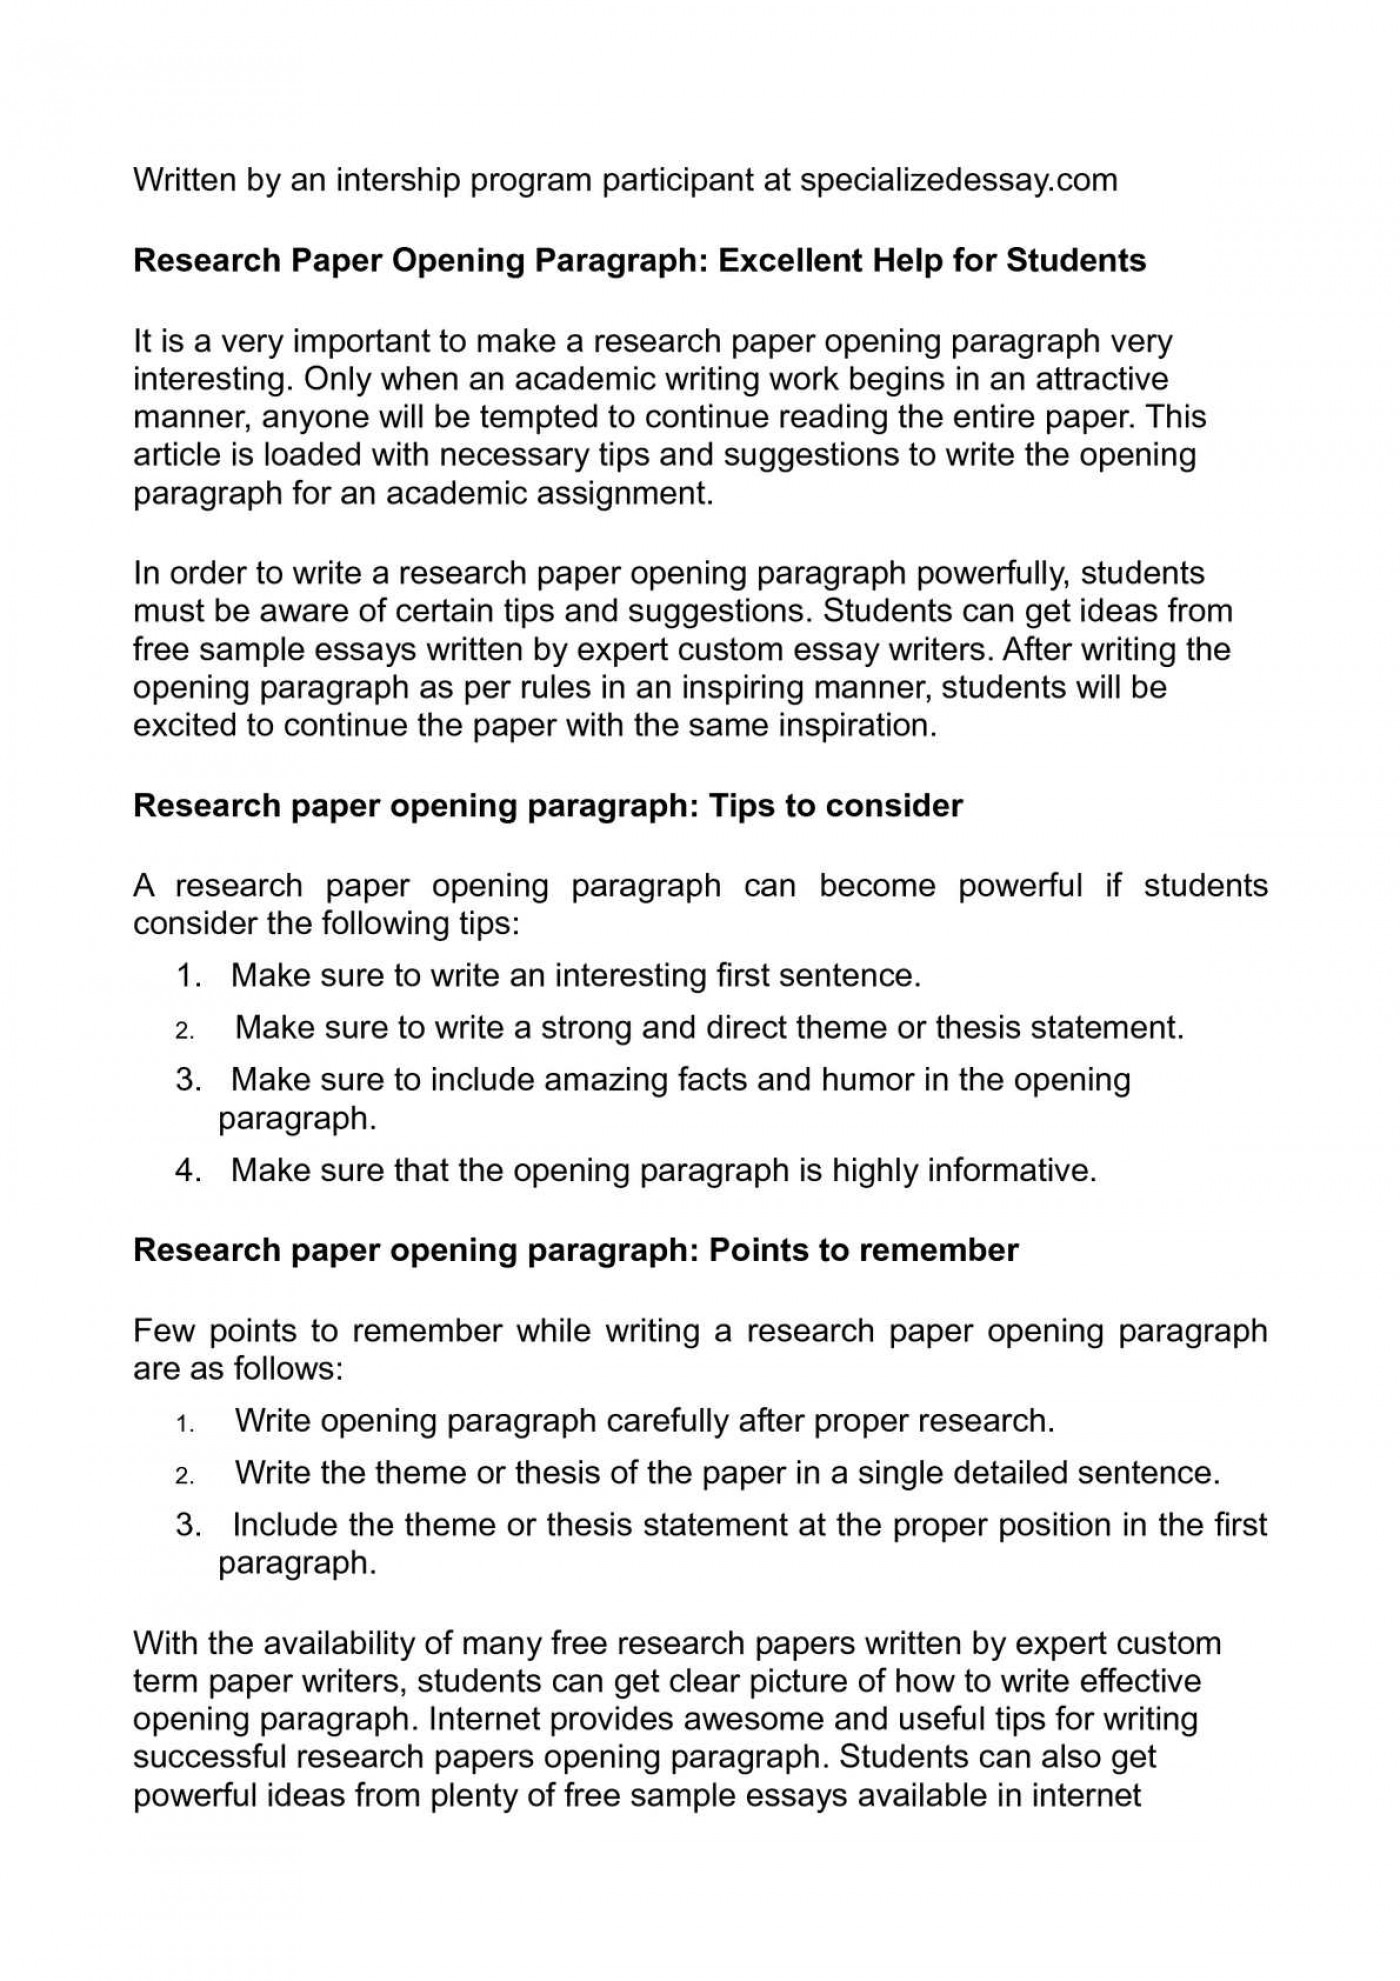 017 Cool Topics To Do Research Paper On Impressive A Interesting For Medical Of In Computer Science Economic 1400